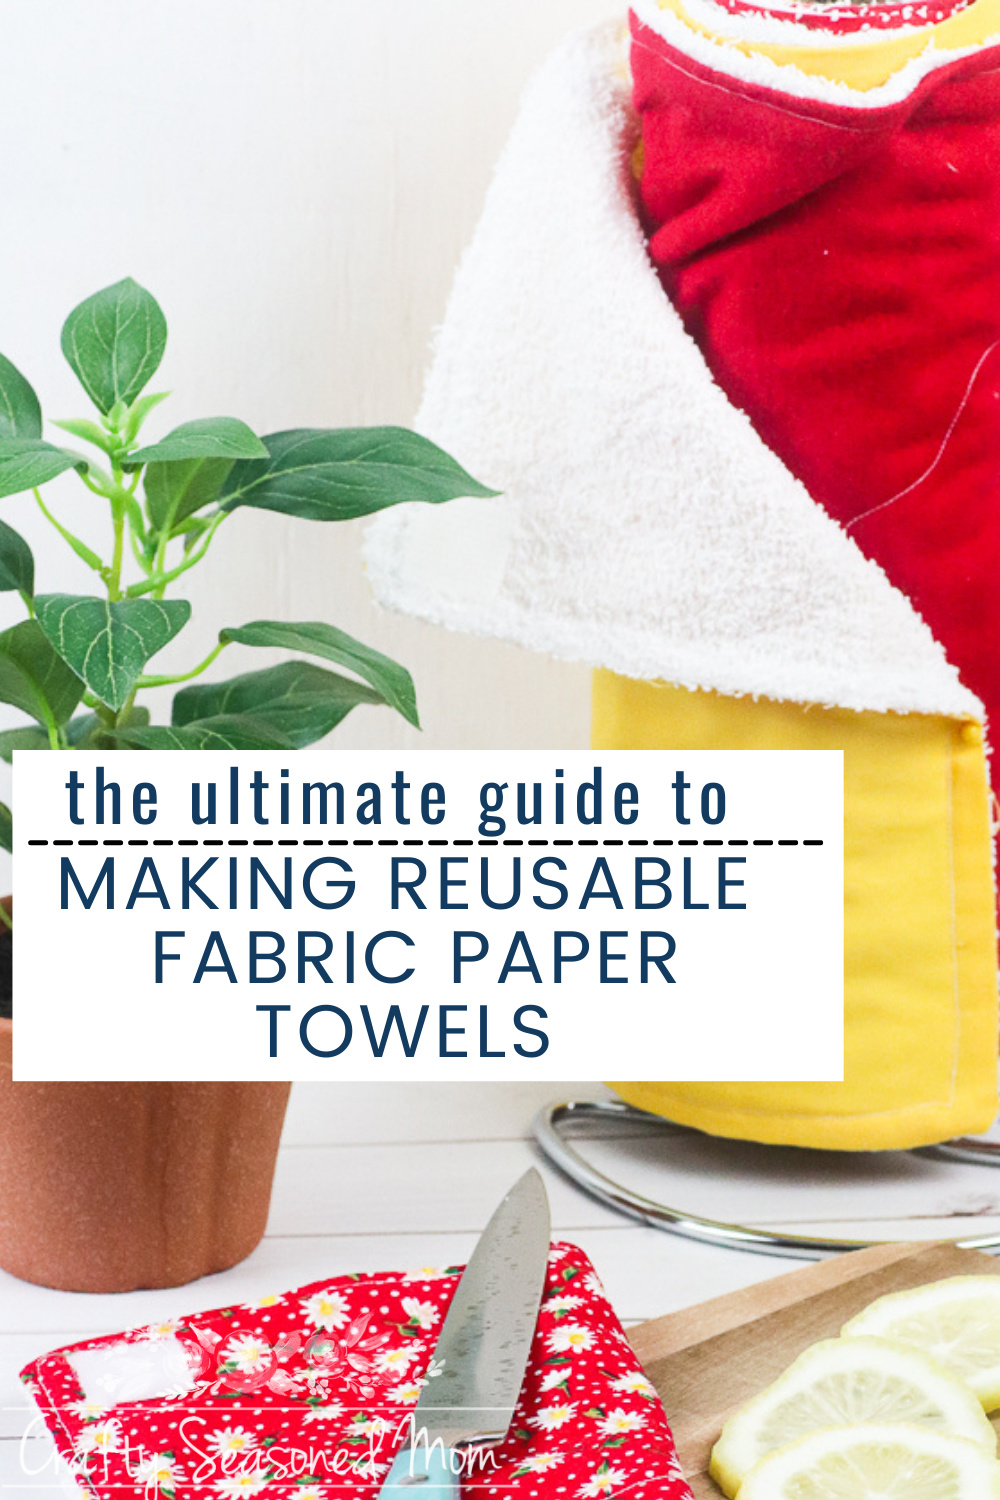 How To Make Reusable Fabric Paper Towels on a holder next to a plant on a white table